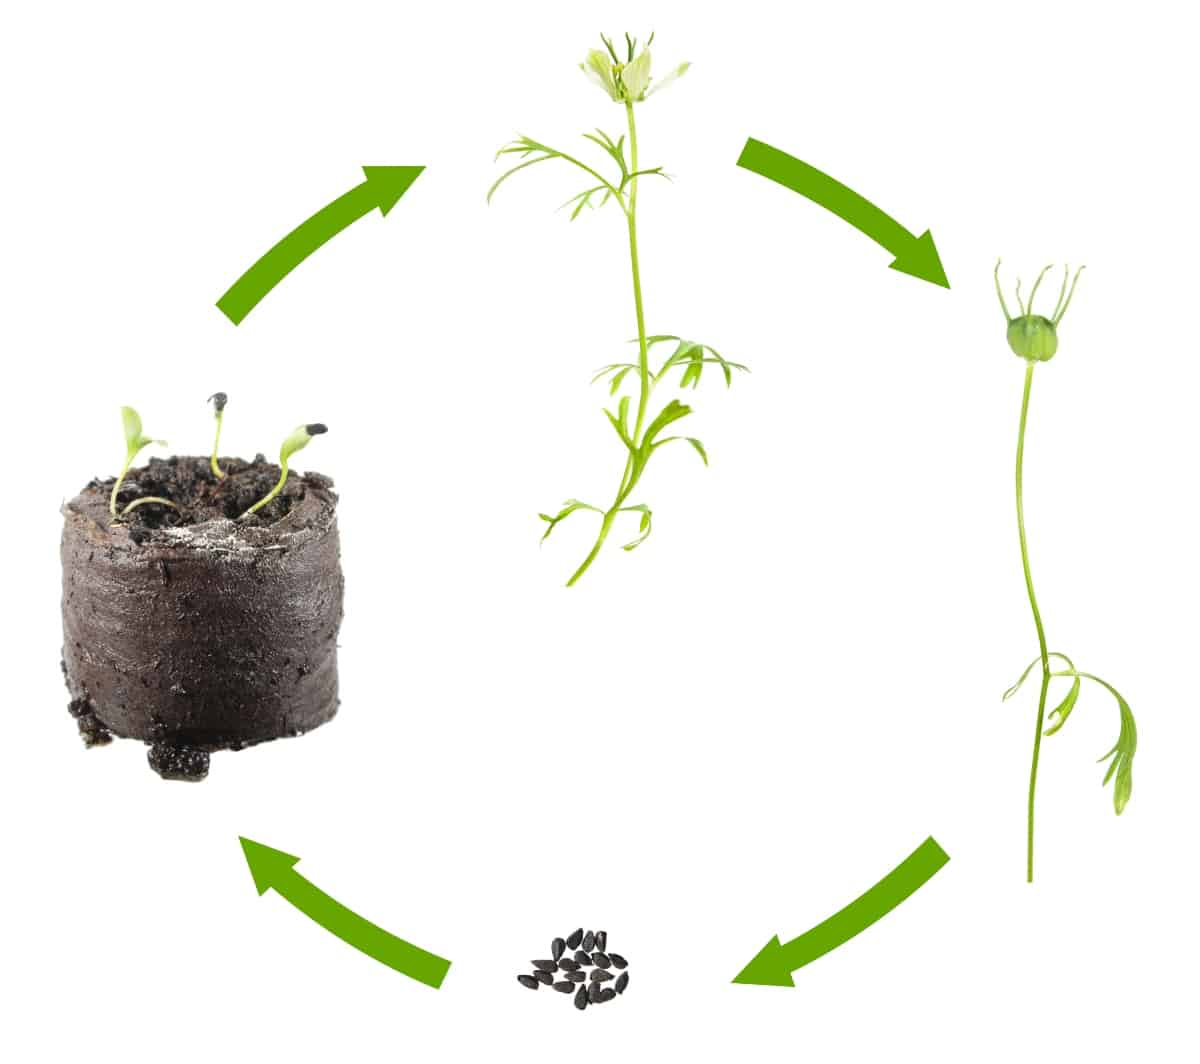 Nigella sativa plant's growth cycle, from seedlings, to plant and black seeds